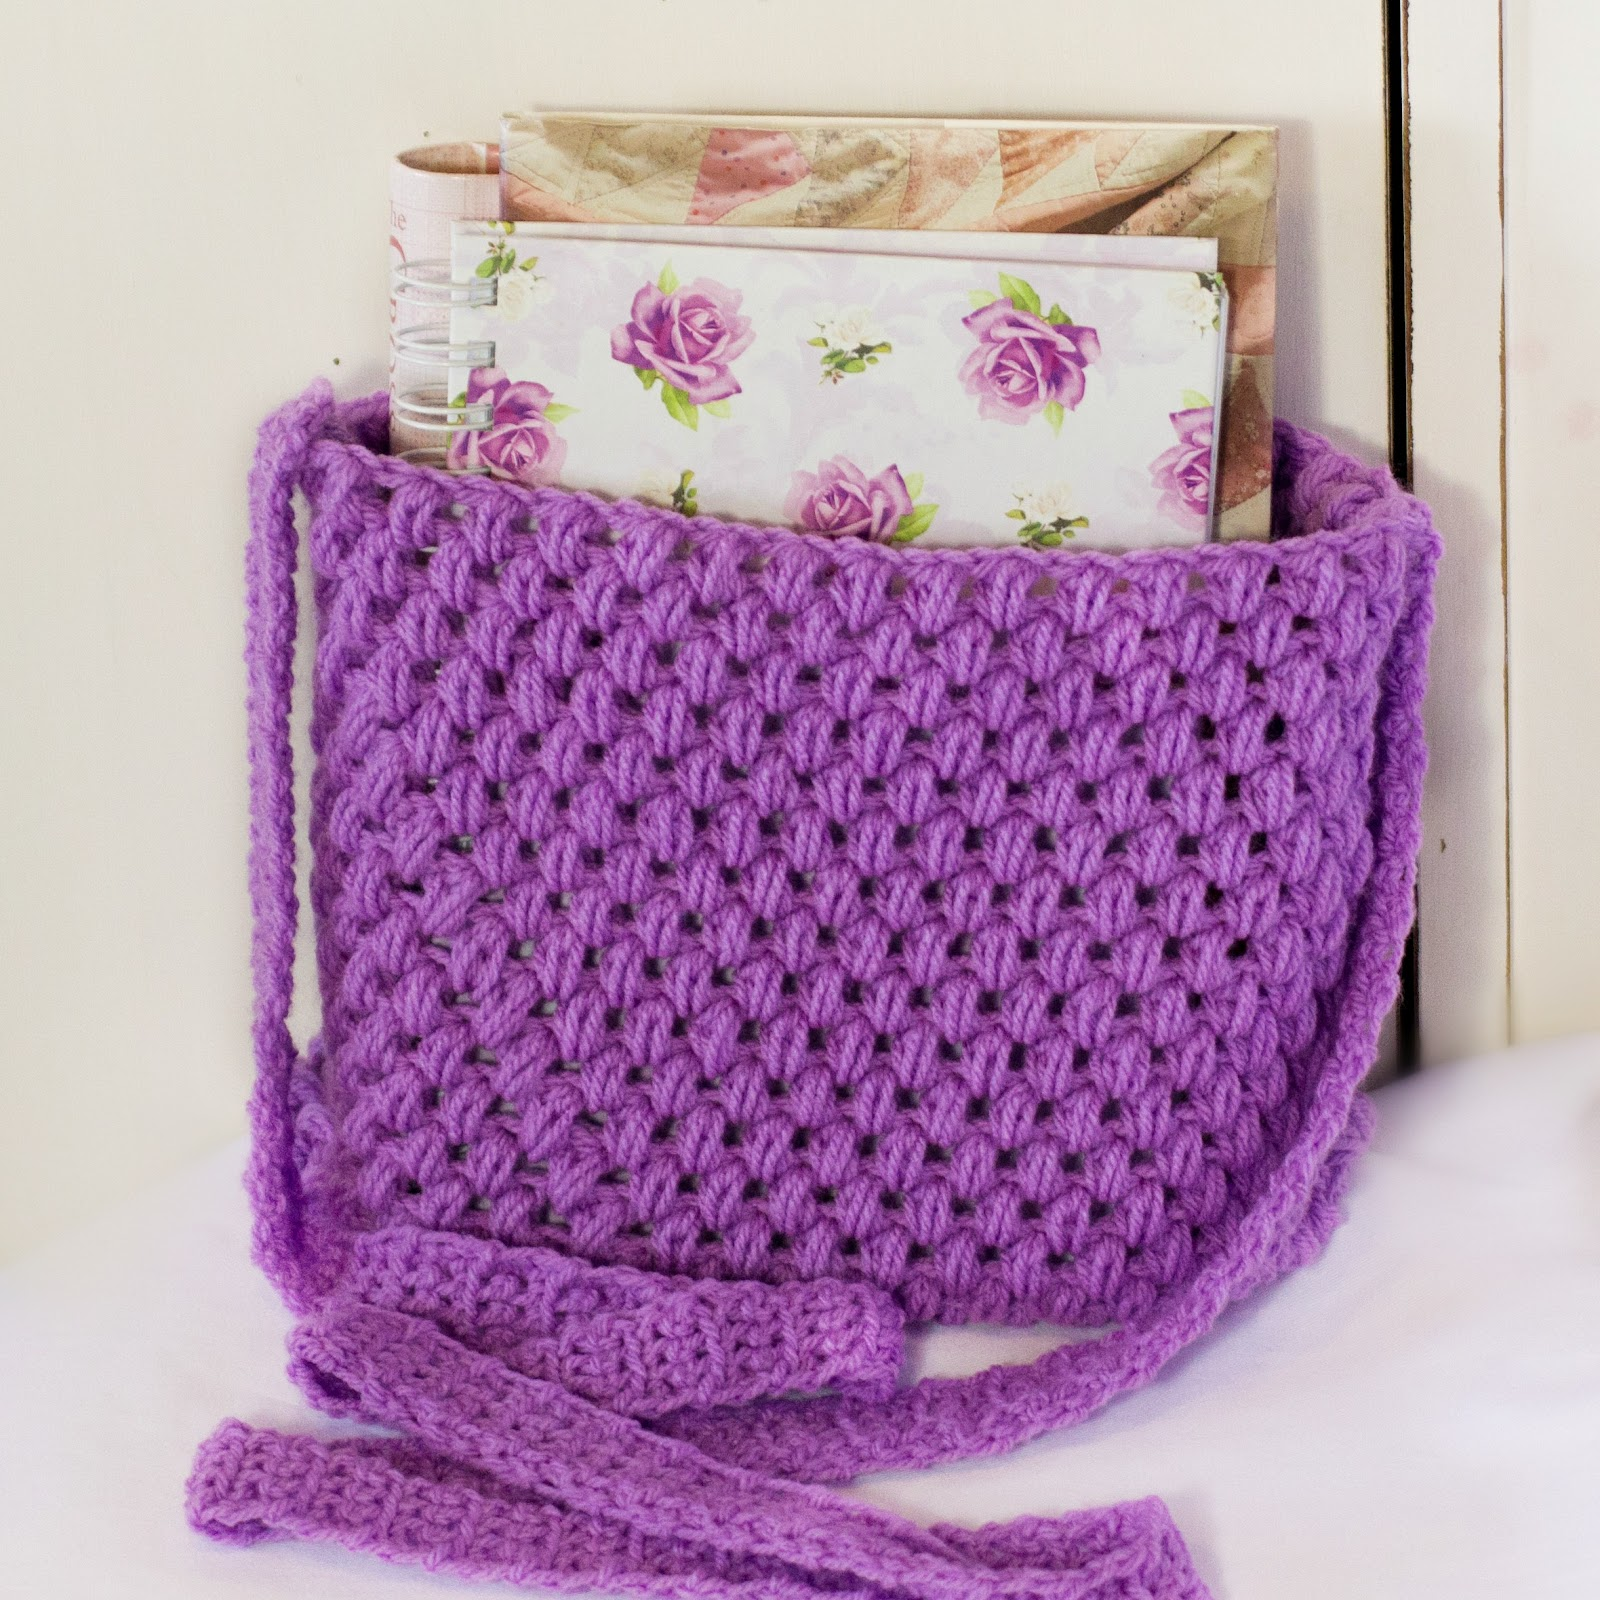 Small Bag Crochet Pattern : ... Craft, Crochet, Create: Out and About ~ Easy Tote Bag Crochet Pattern